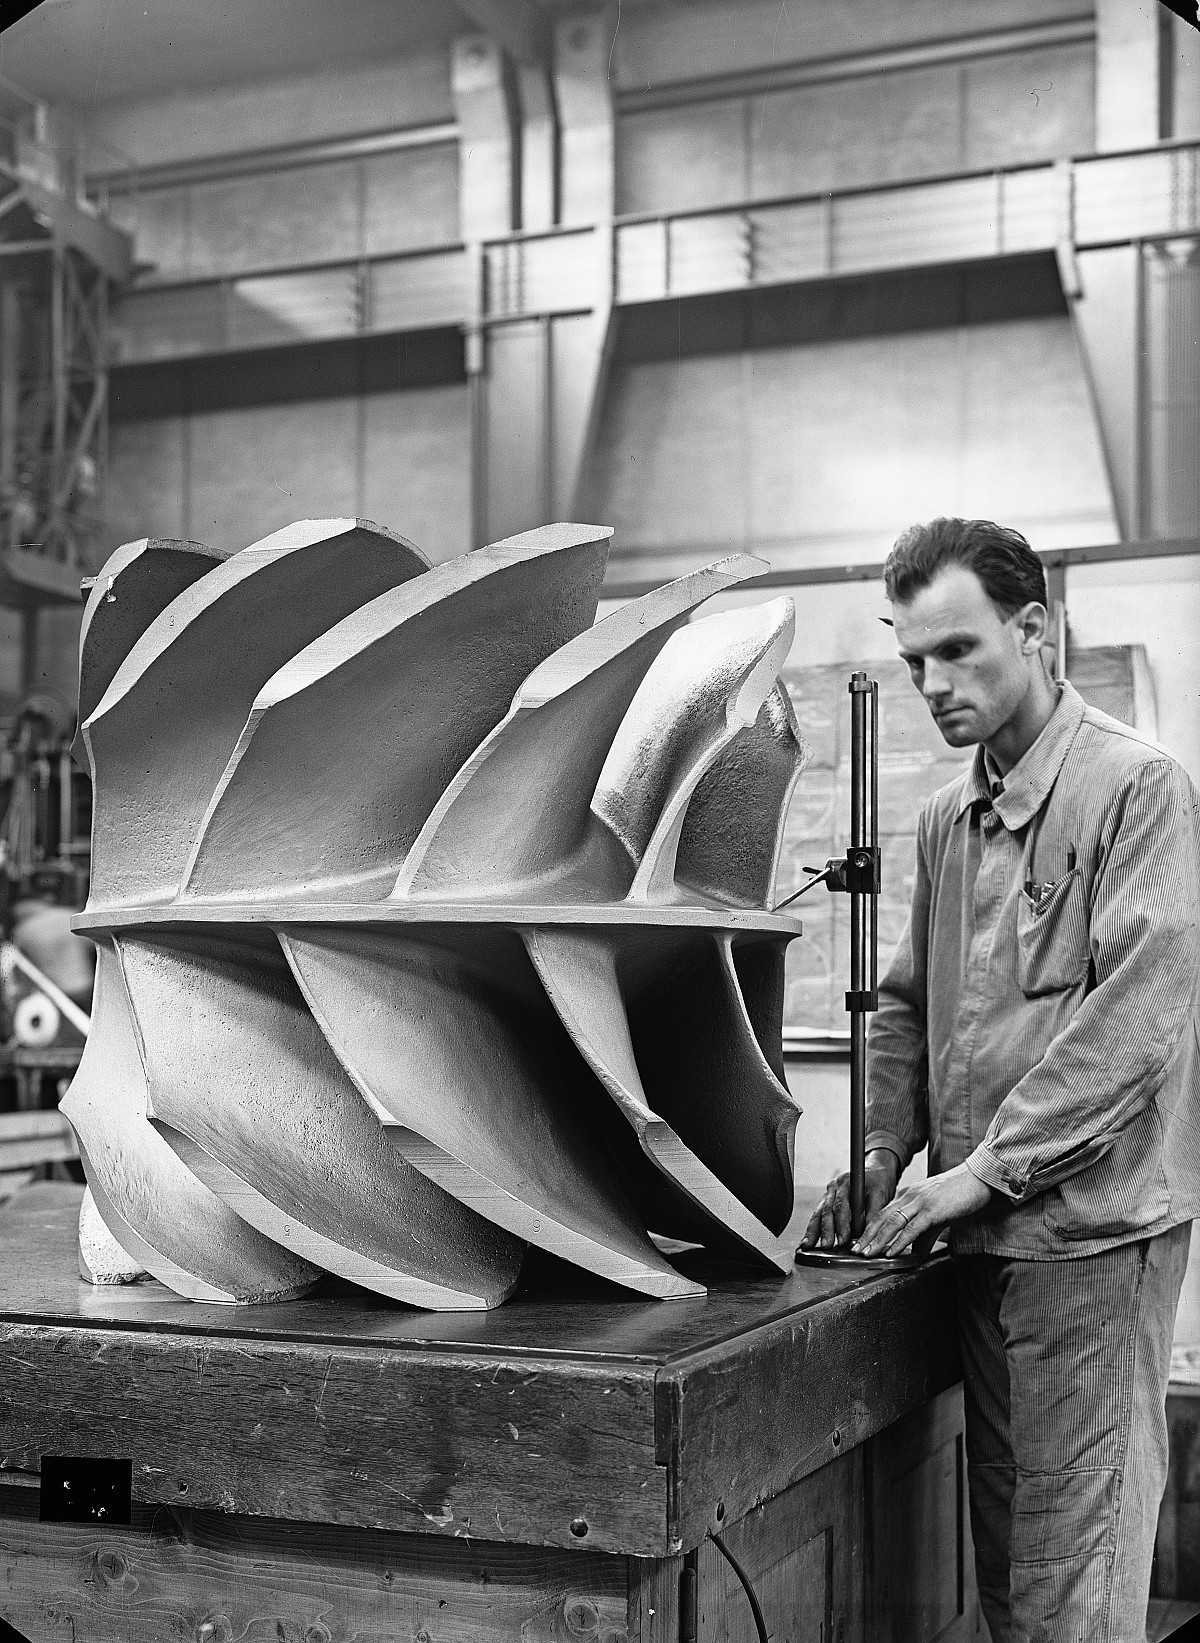 GFA 16/44584: Double impeller